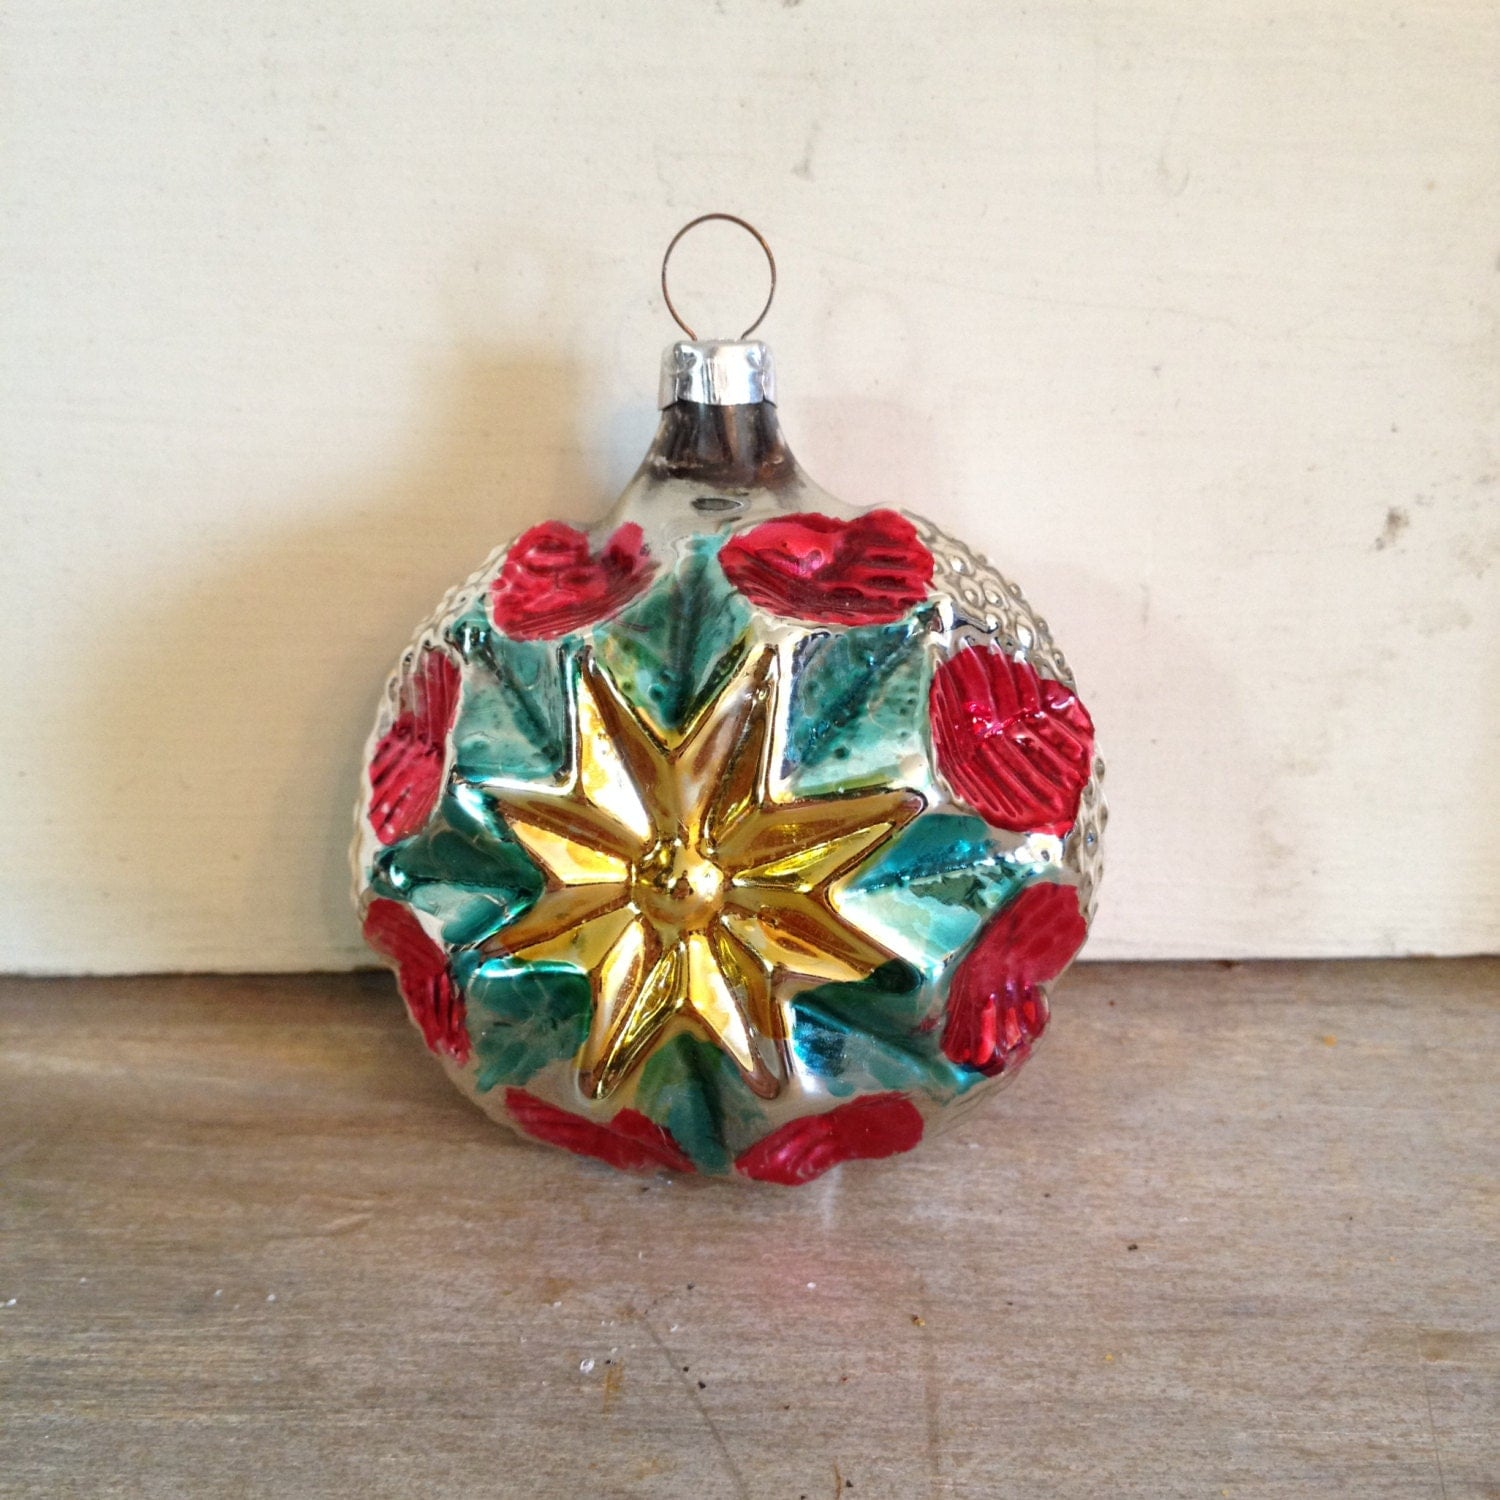 Decorations In Germany During Christmas : Christmas ornaments vintage glass made in germany